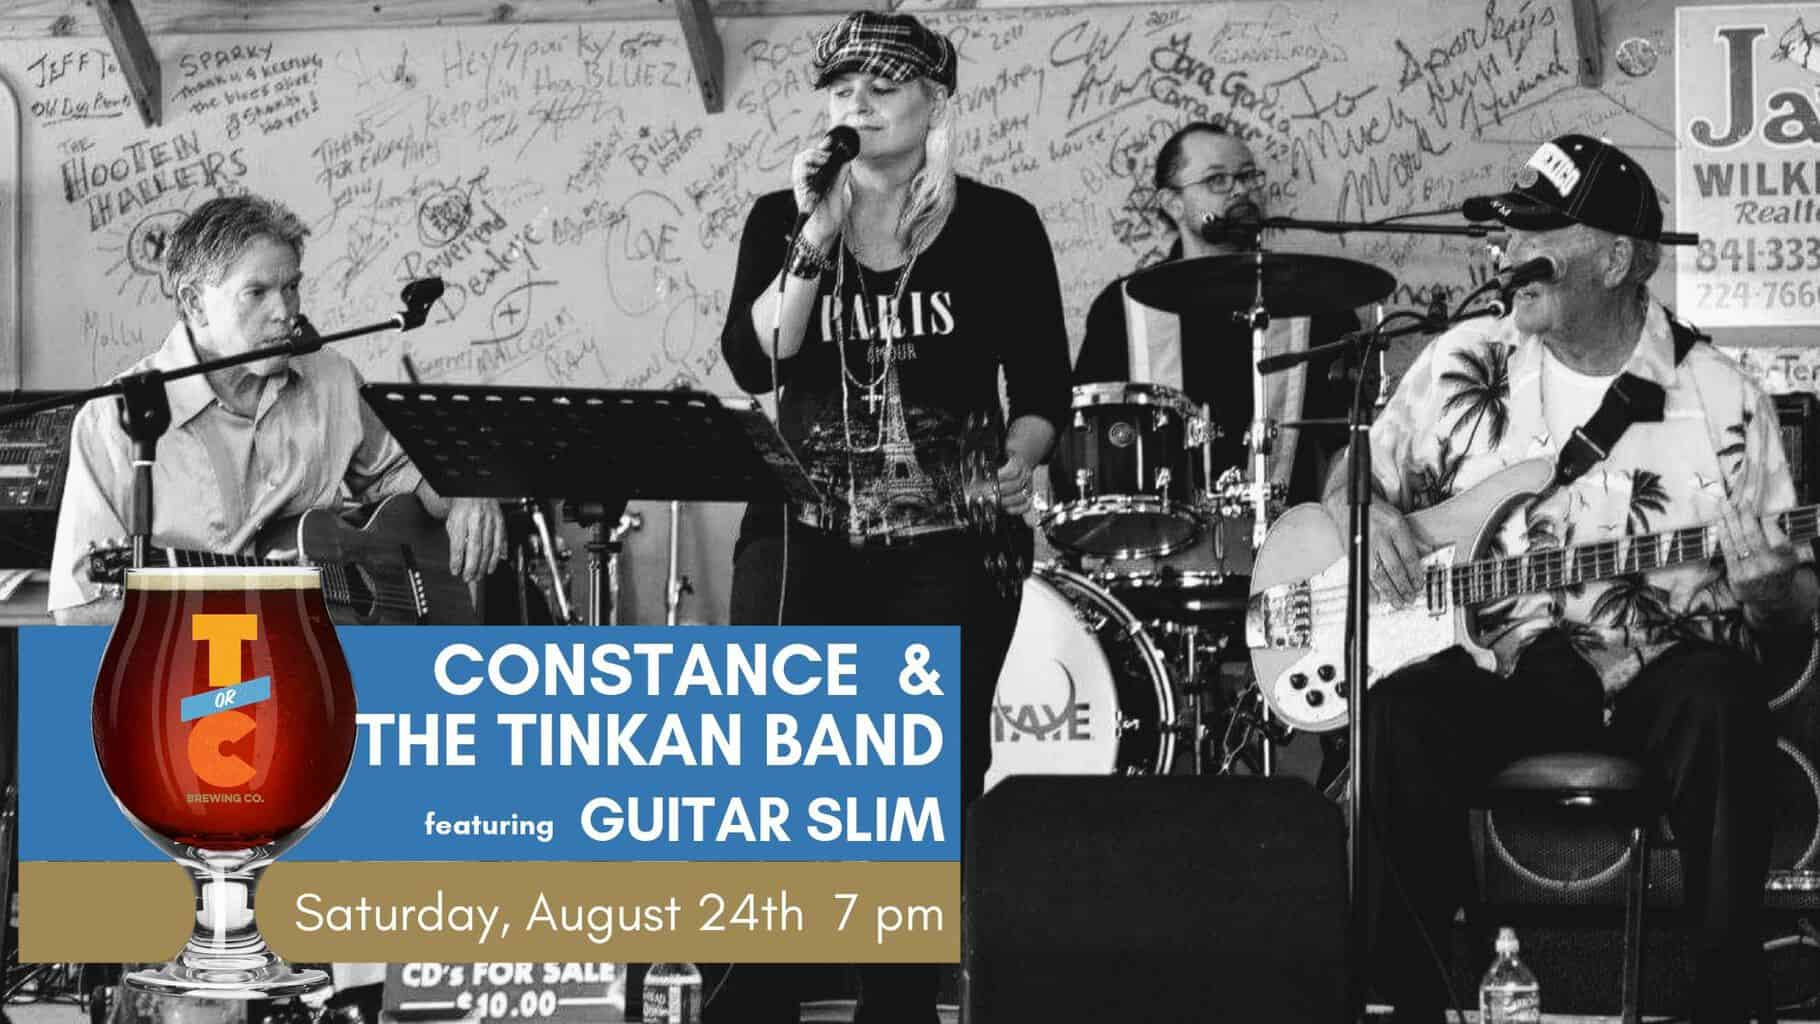 Constance and The TinKan Band featuring Guitar Slim